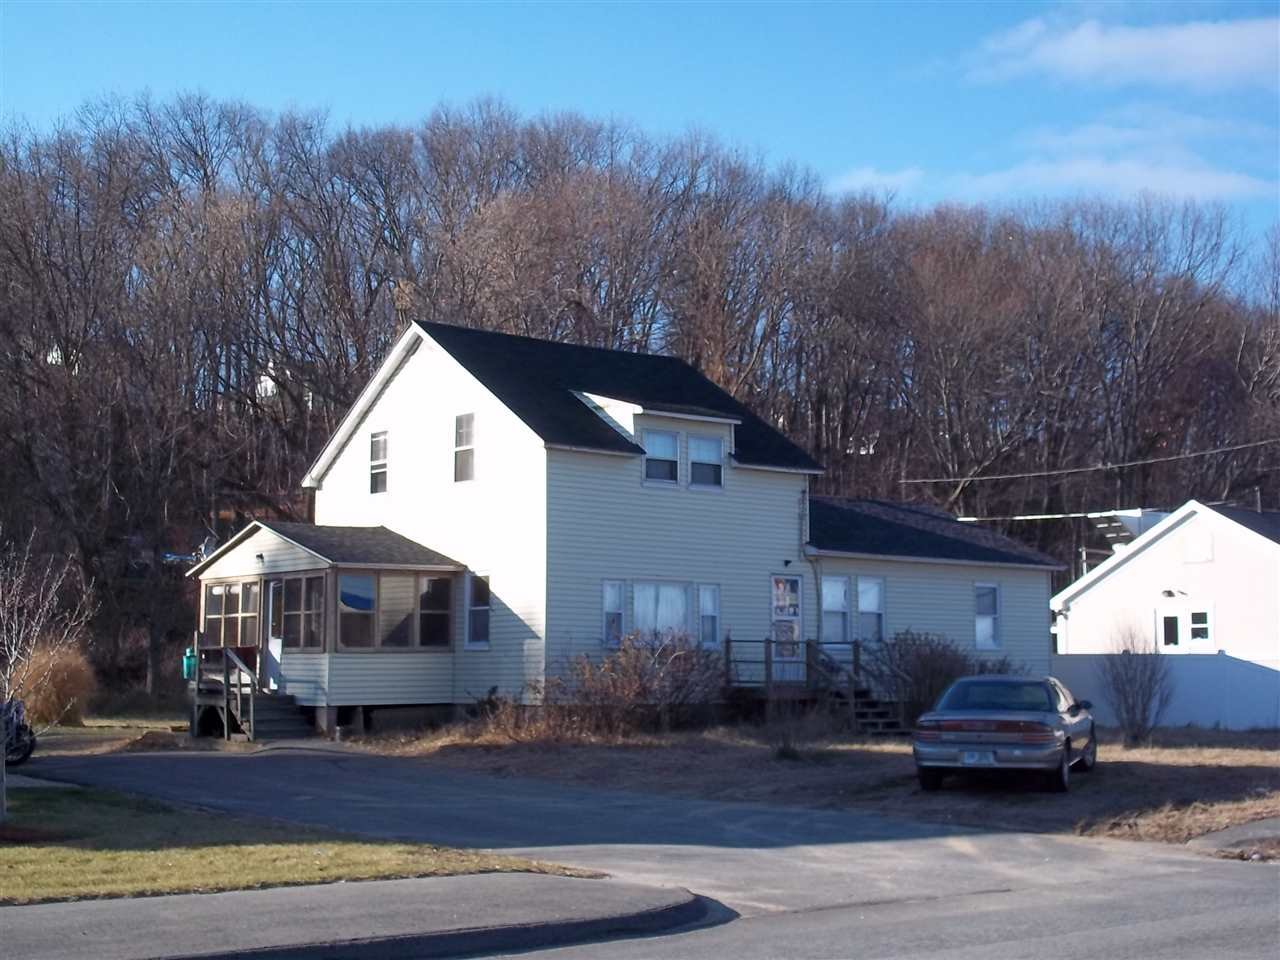 160 Eddy Road, Manchester, NH 03102